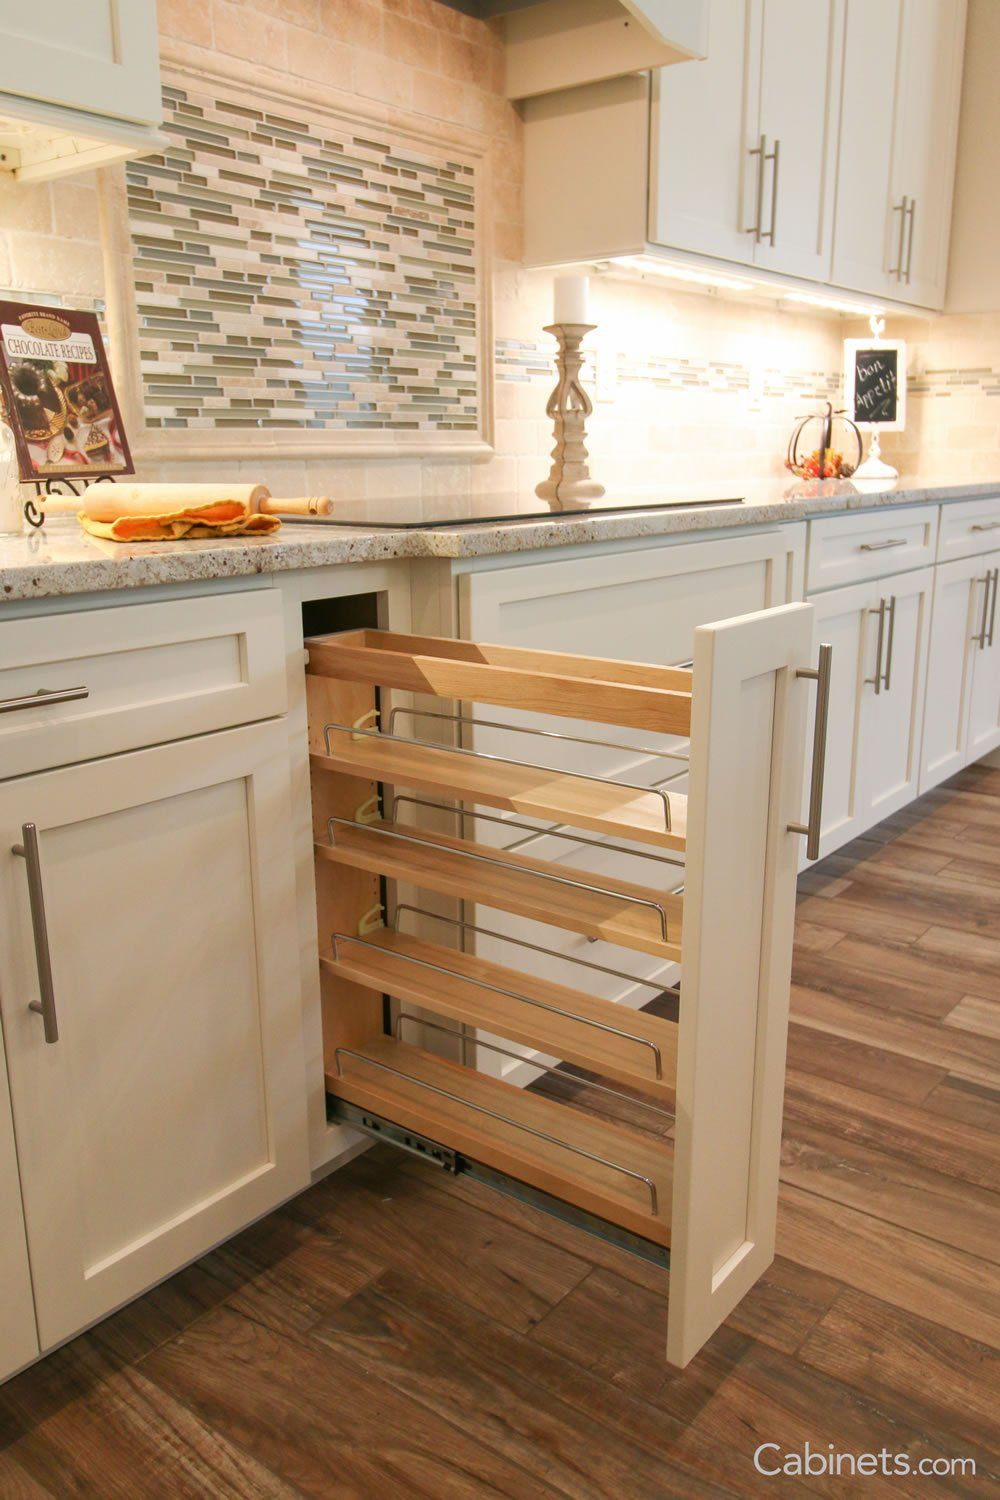 Pin by LDVeezy on Kitchen | Refinishing cabinets, Kitchen ...